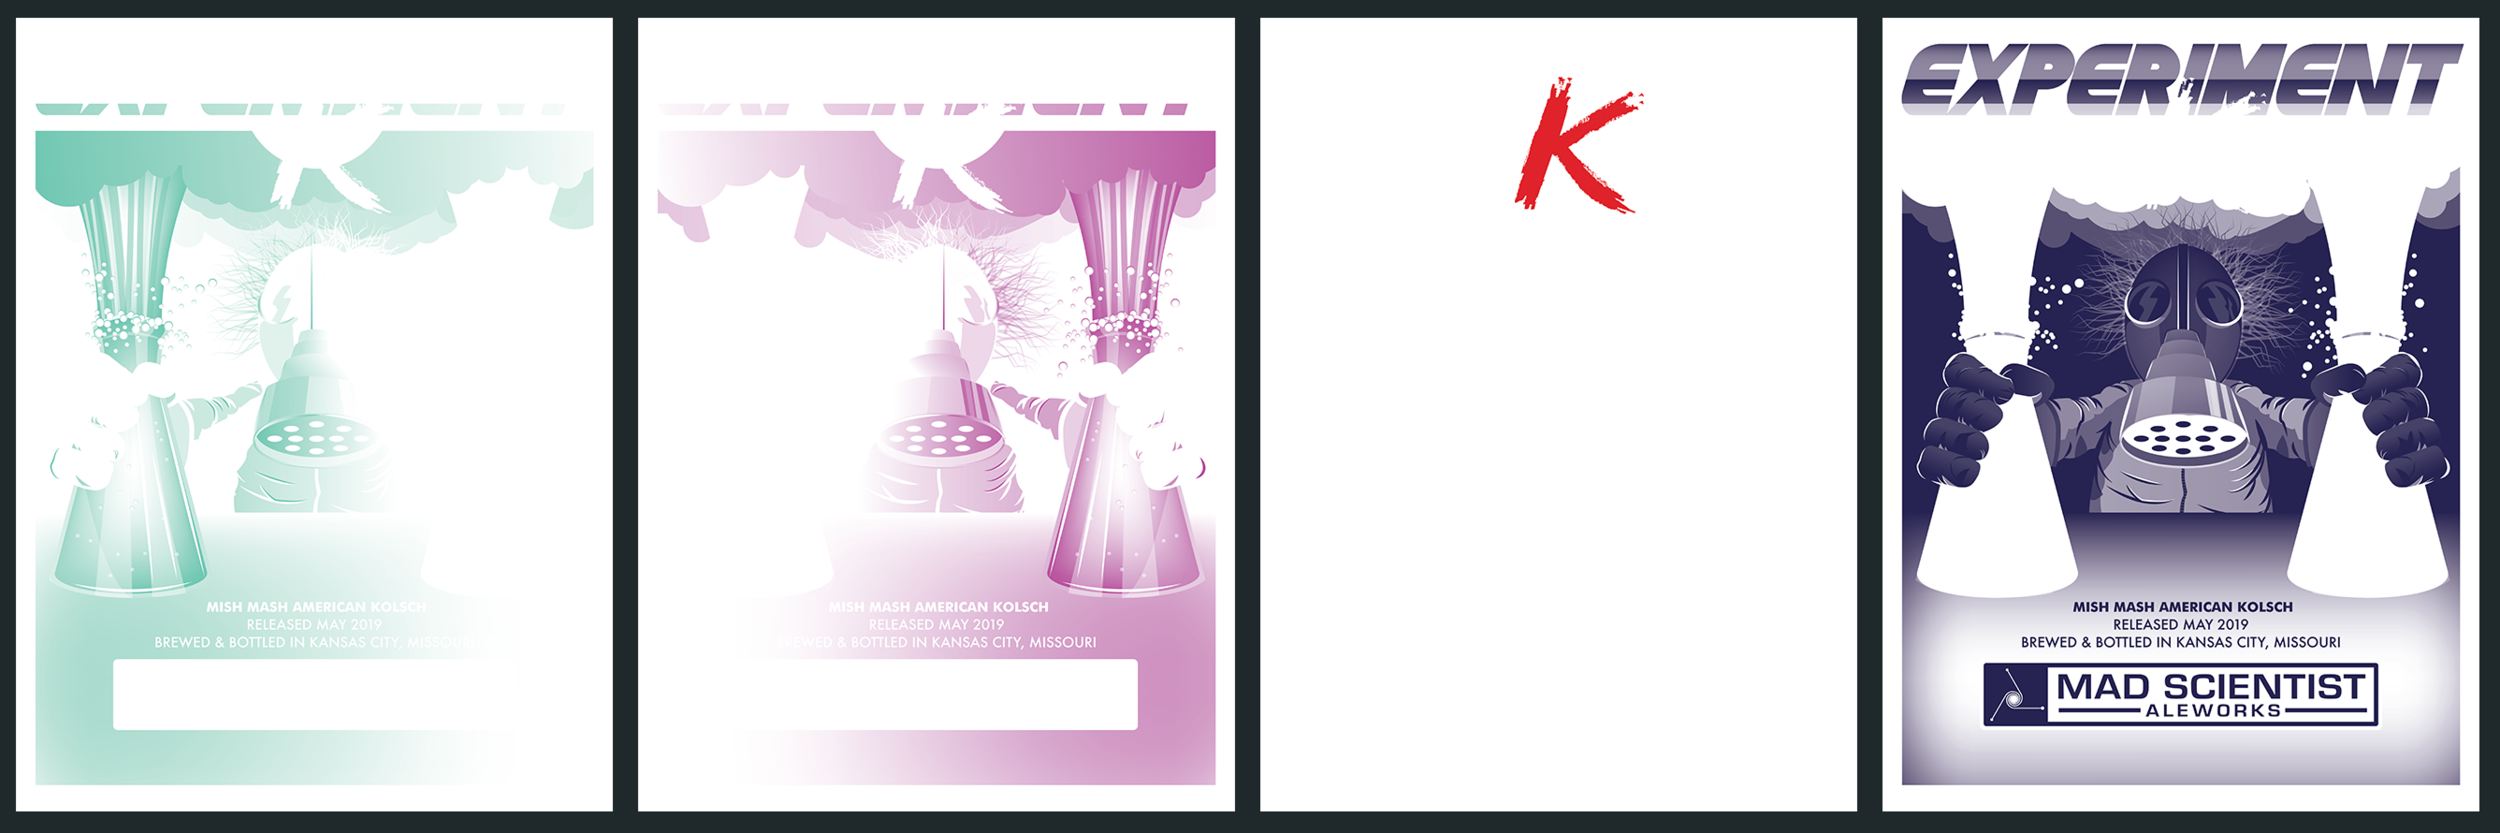 Experiment-K-Poster-color-separations-design-logo-branding-identity-brewery-brewing-kyle-dolan-poster.png